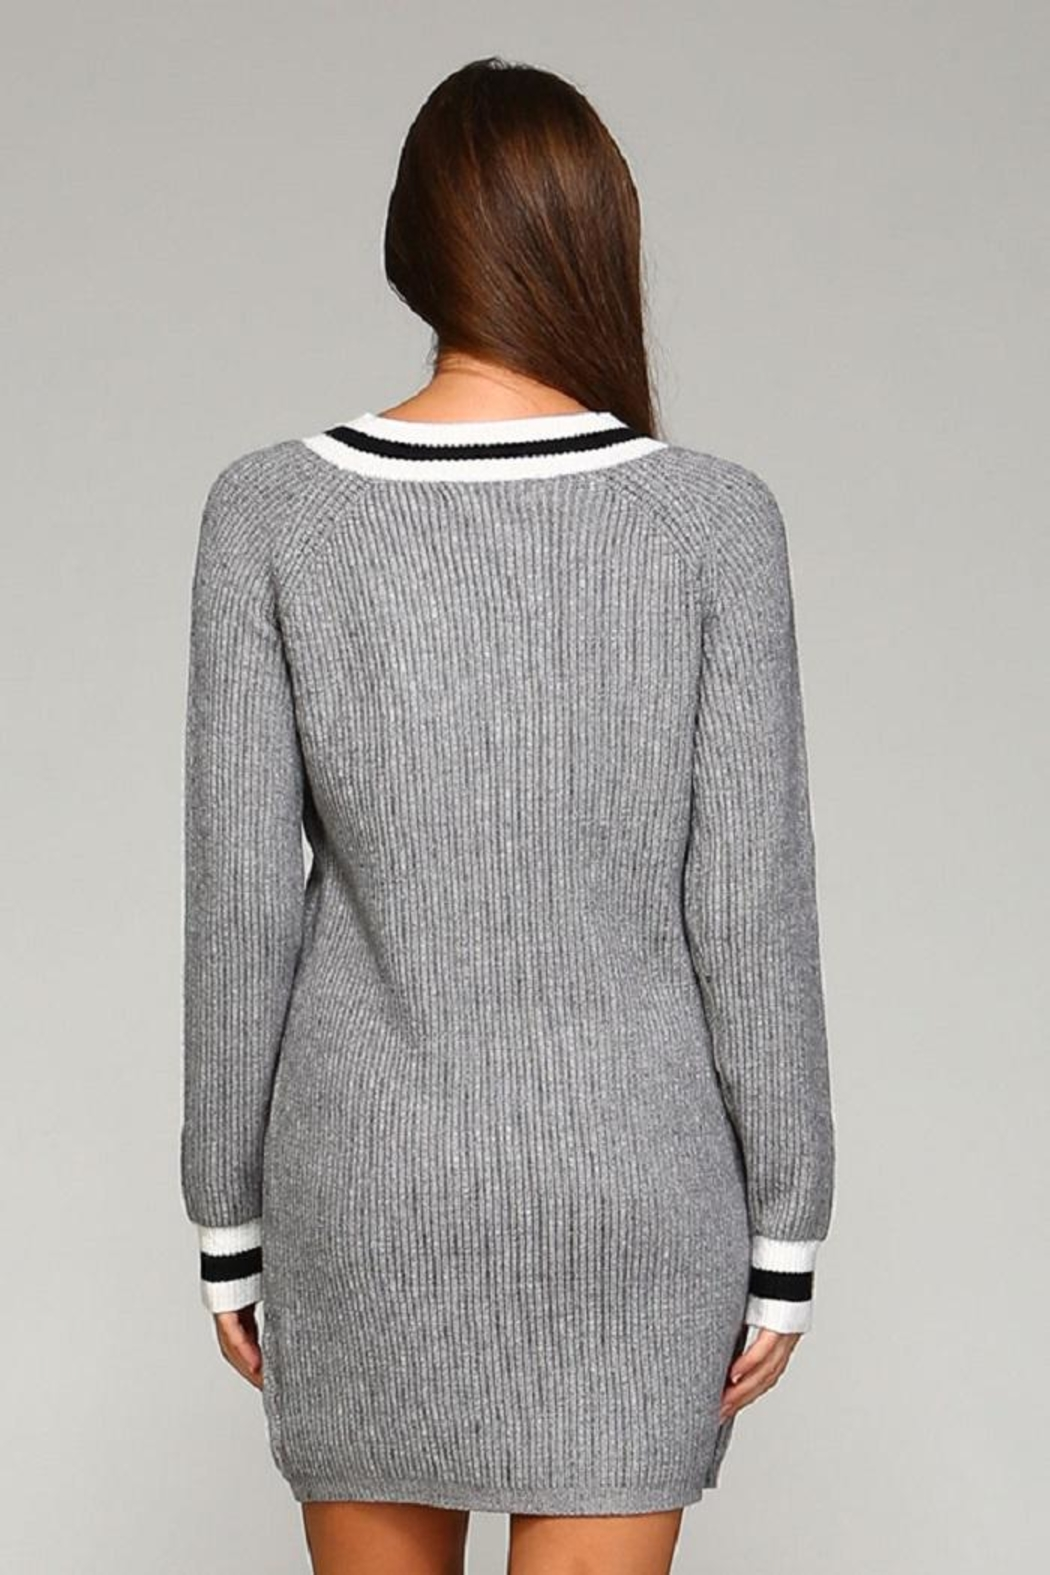 Selfie Couture Grey Varsity Sweater Dress - Front Full Image